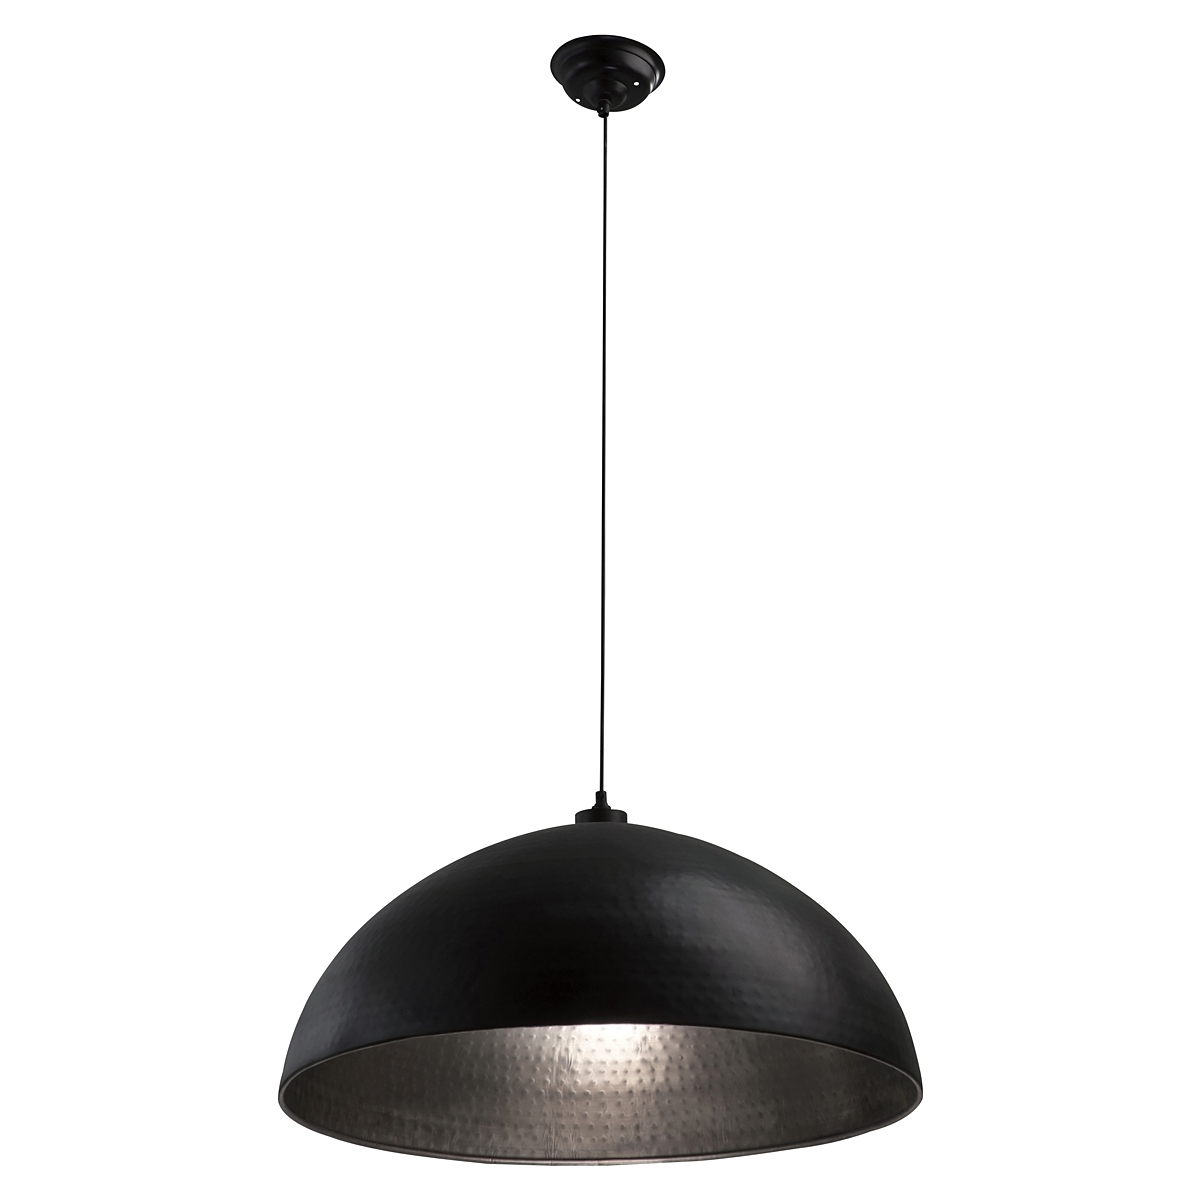 Suspension Grand Diamètre Luminaire Suspension Grand Diametre 13 Inspirational